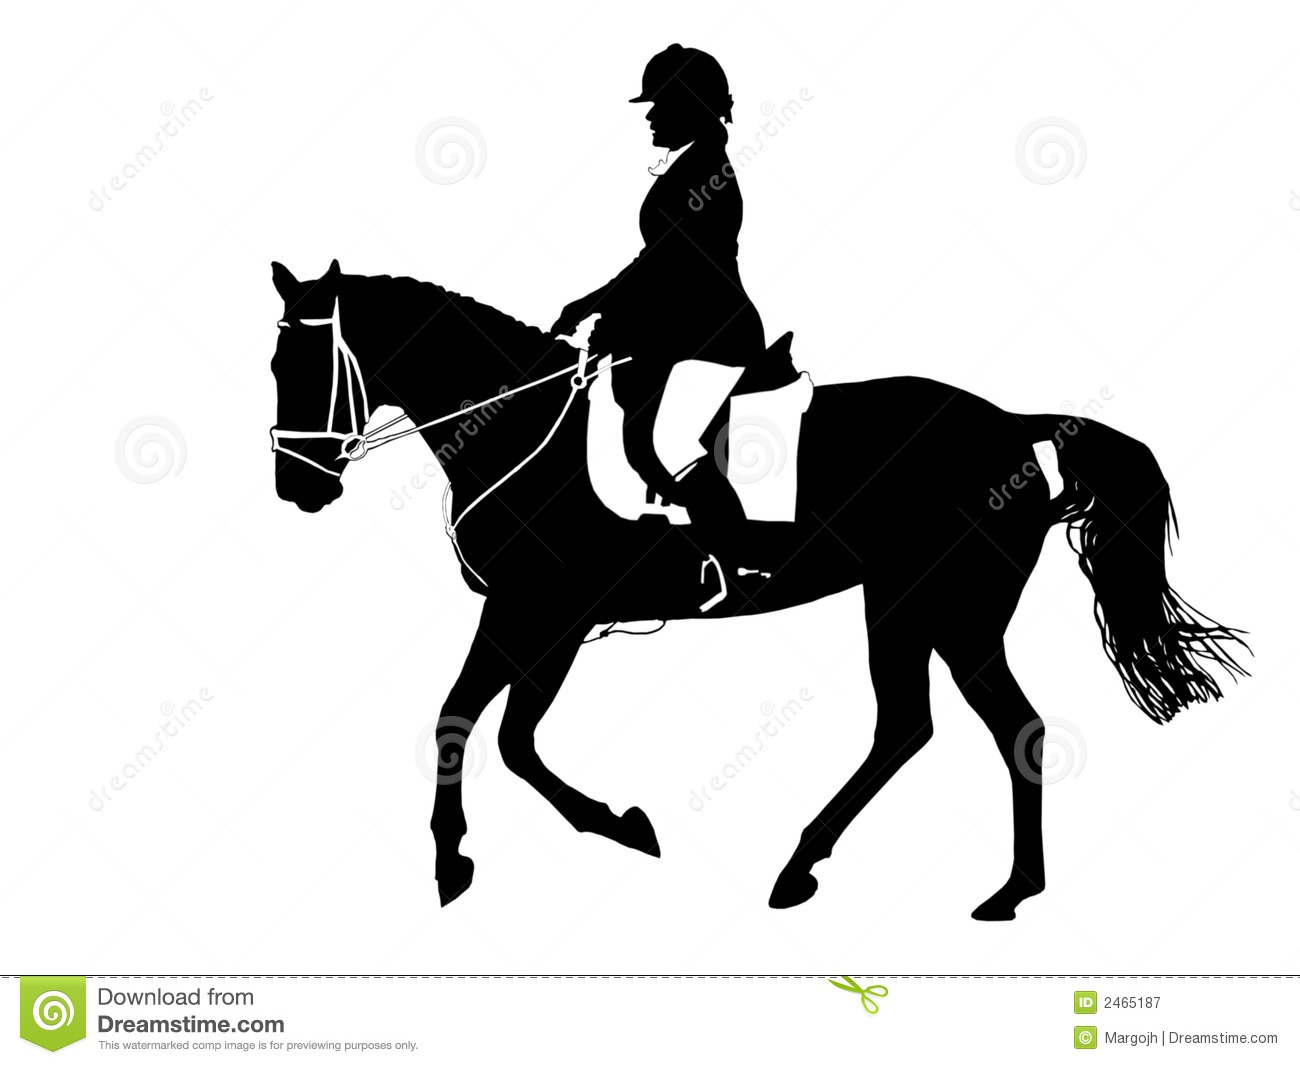 Horse silhouette dressage - photo#21